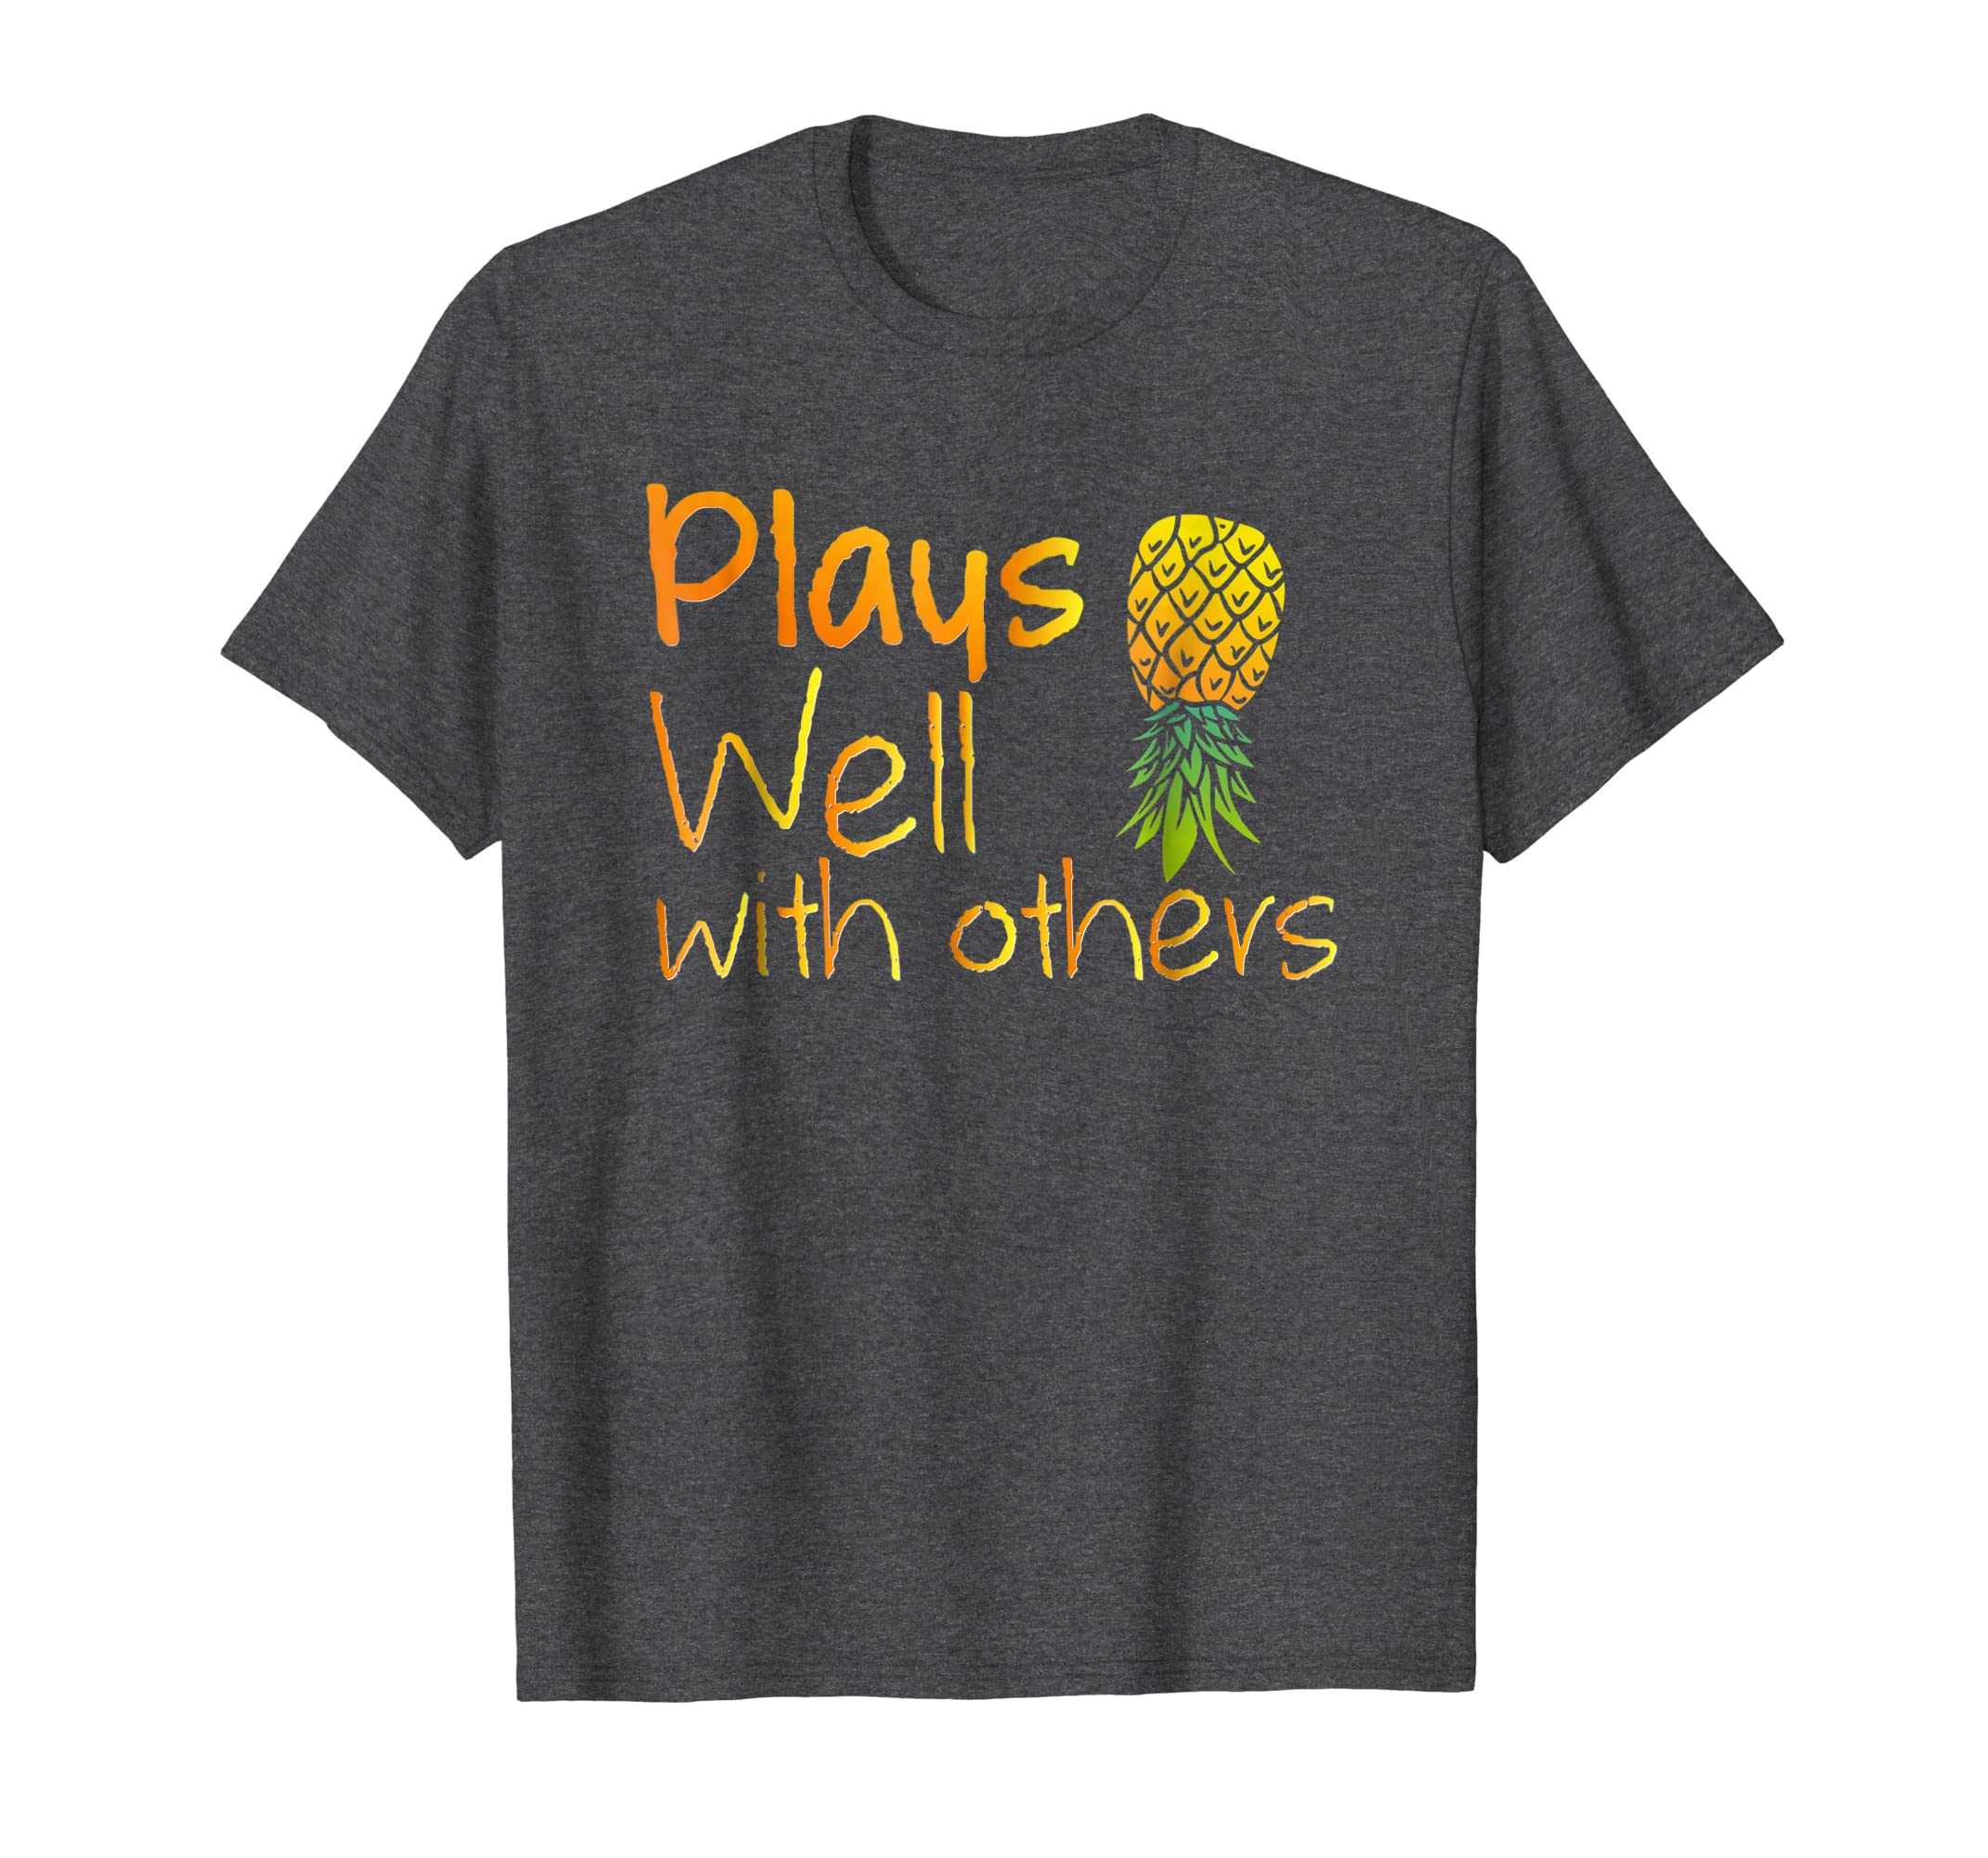 Swingers Pineapple Shirt   Plays Well with Others-Protee